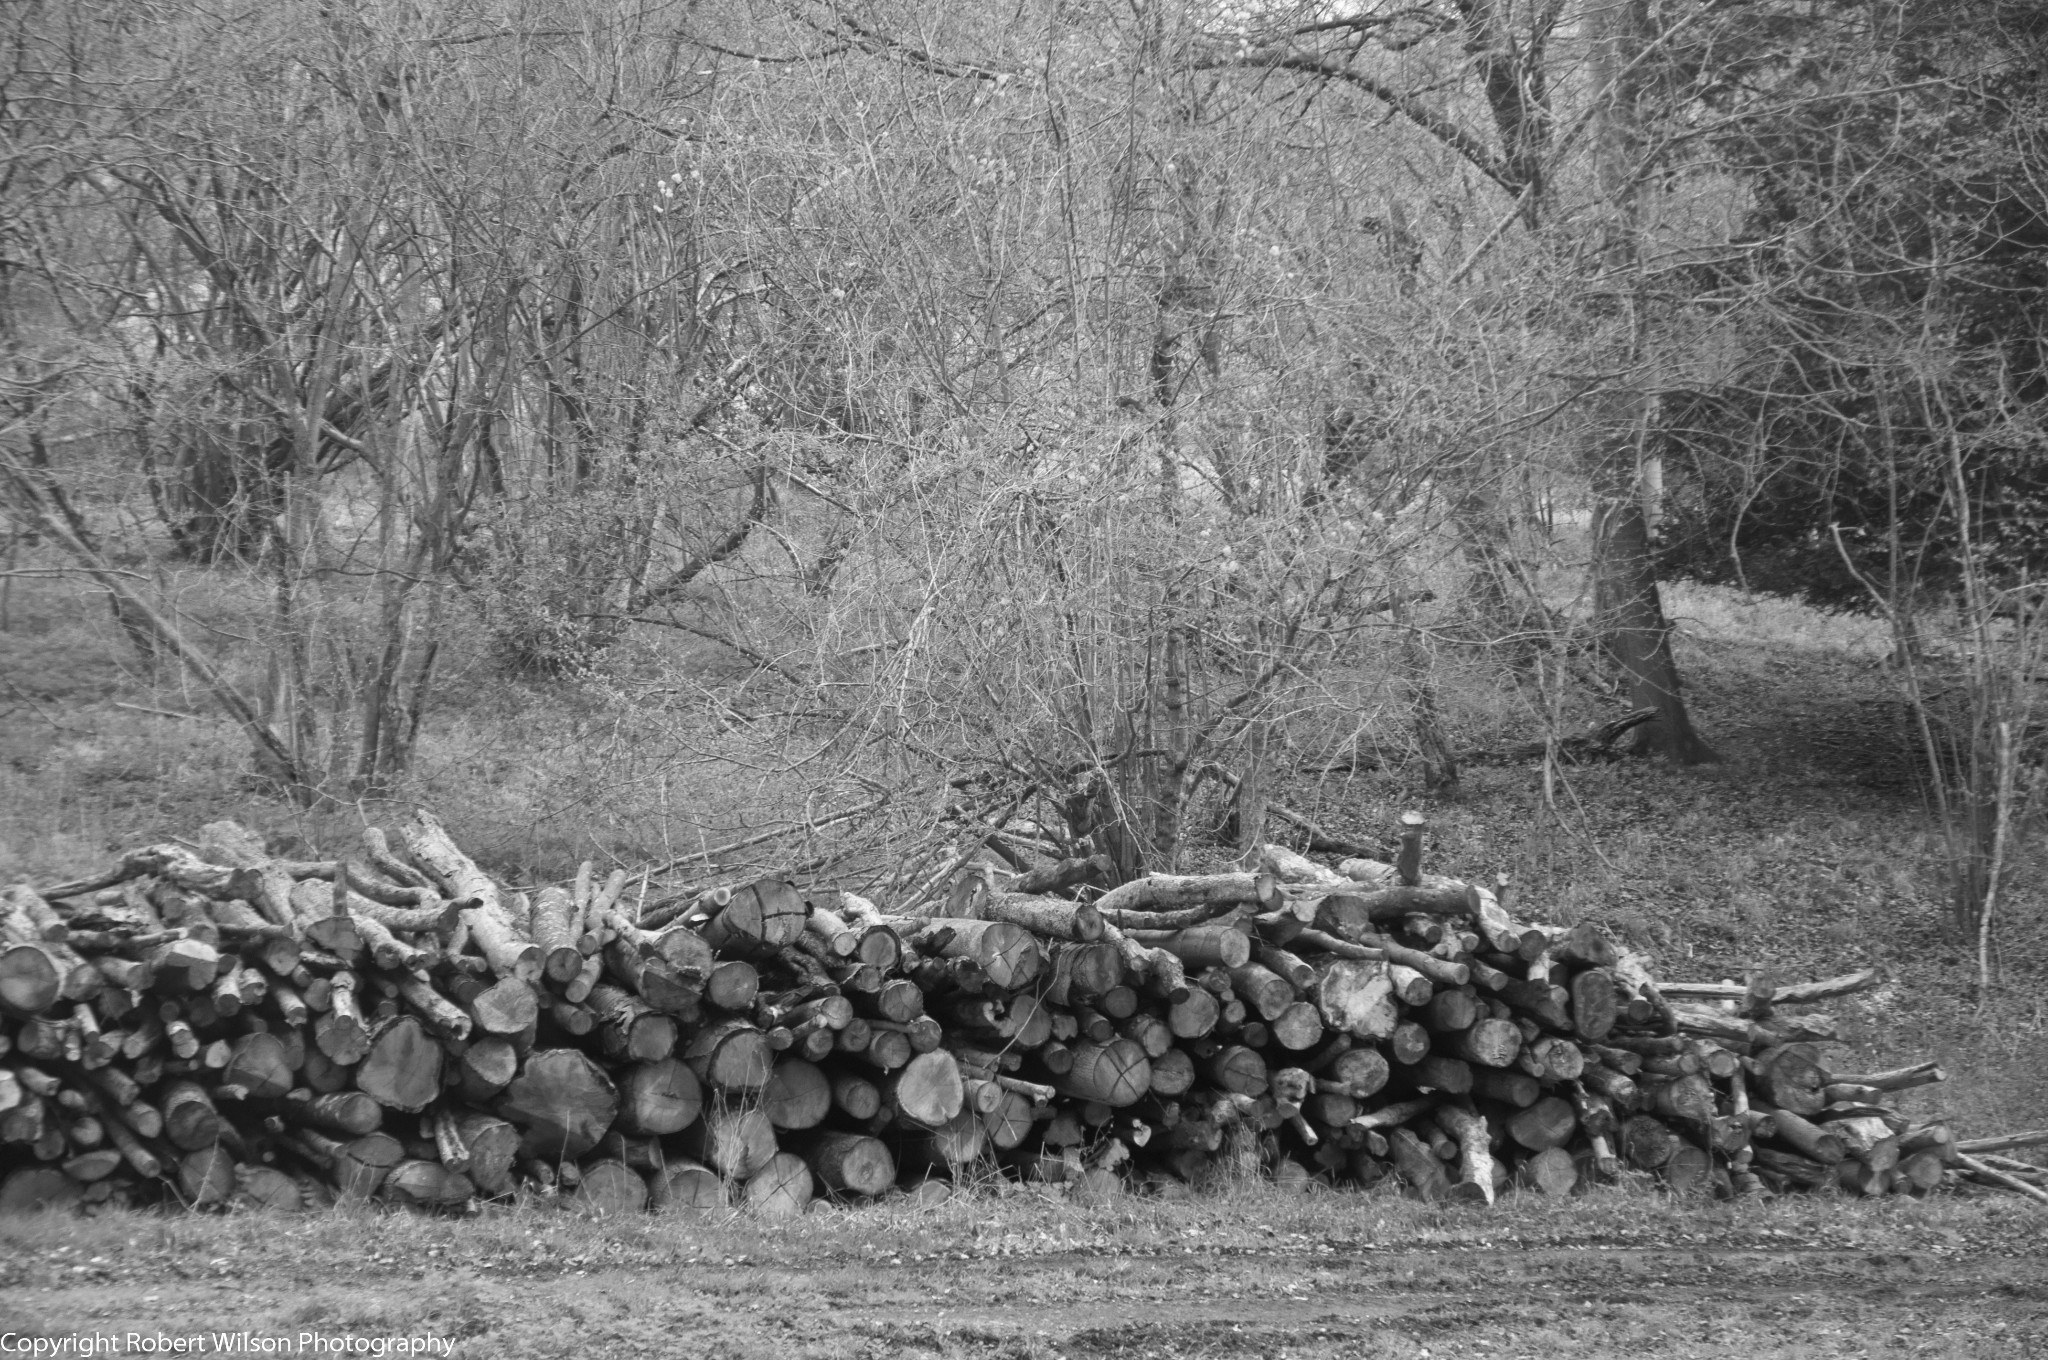 Photo: A log pile in the woods